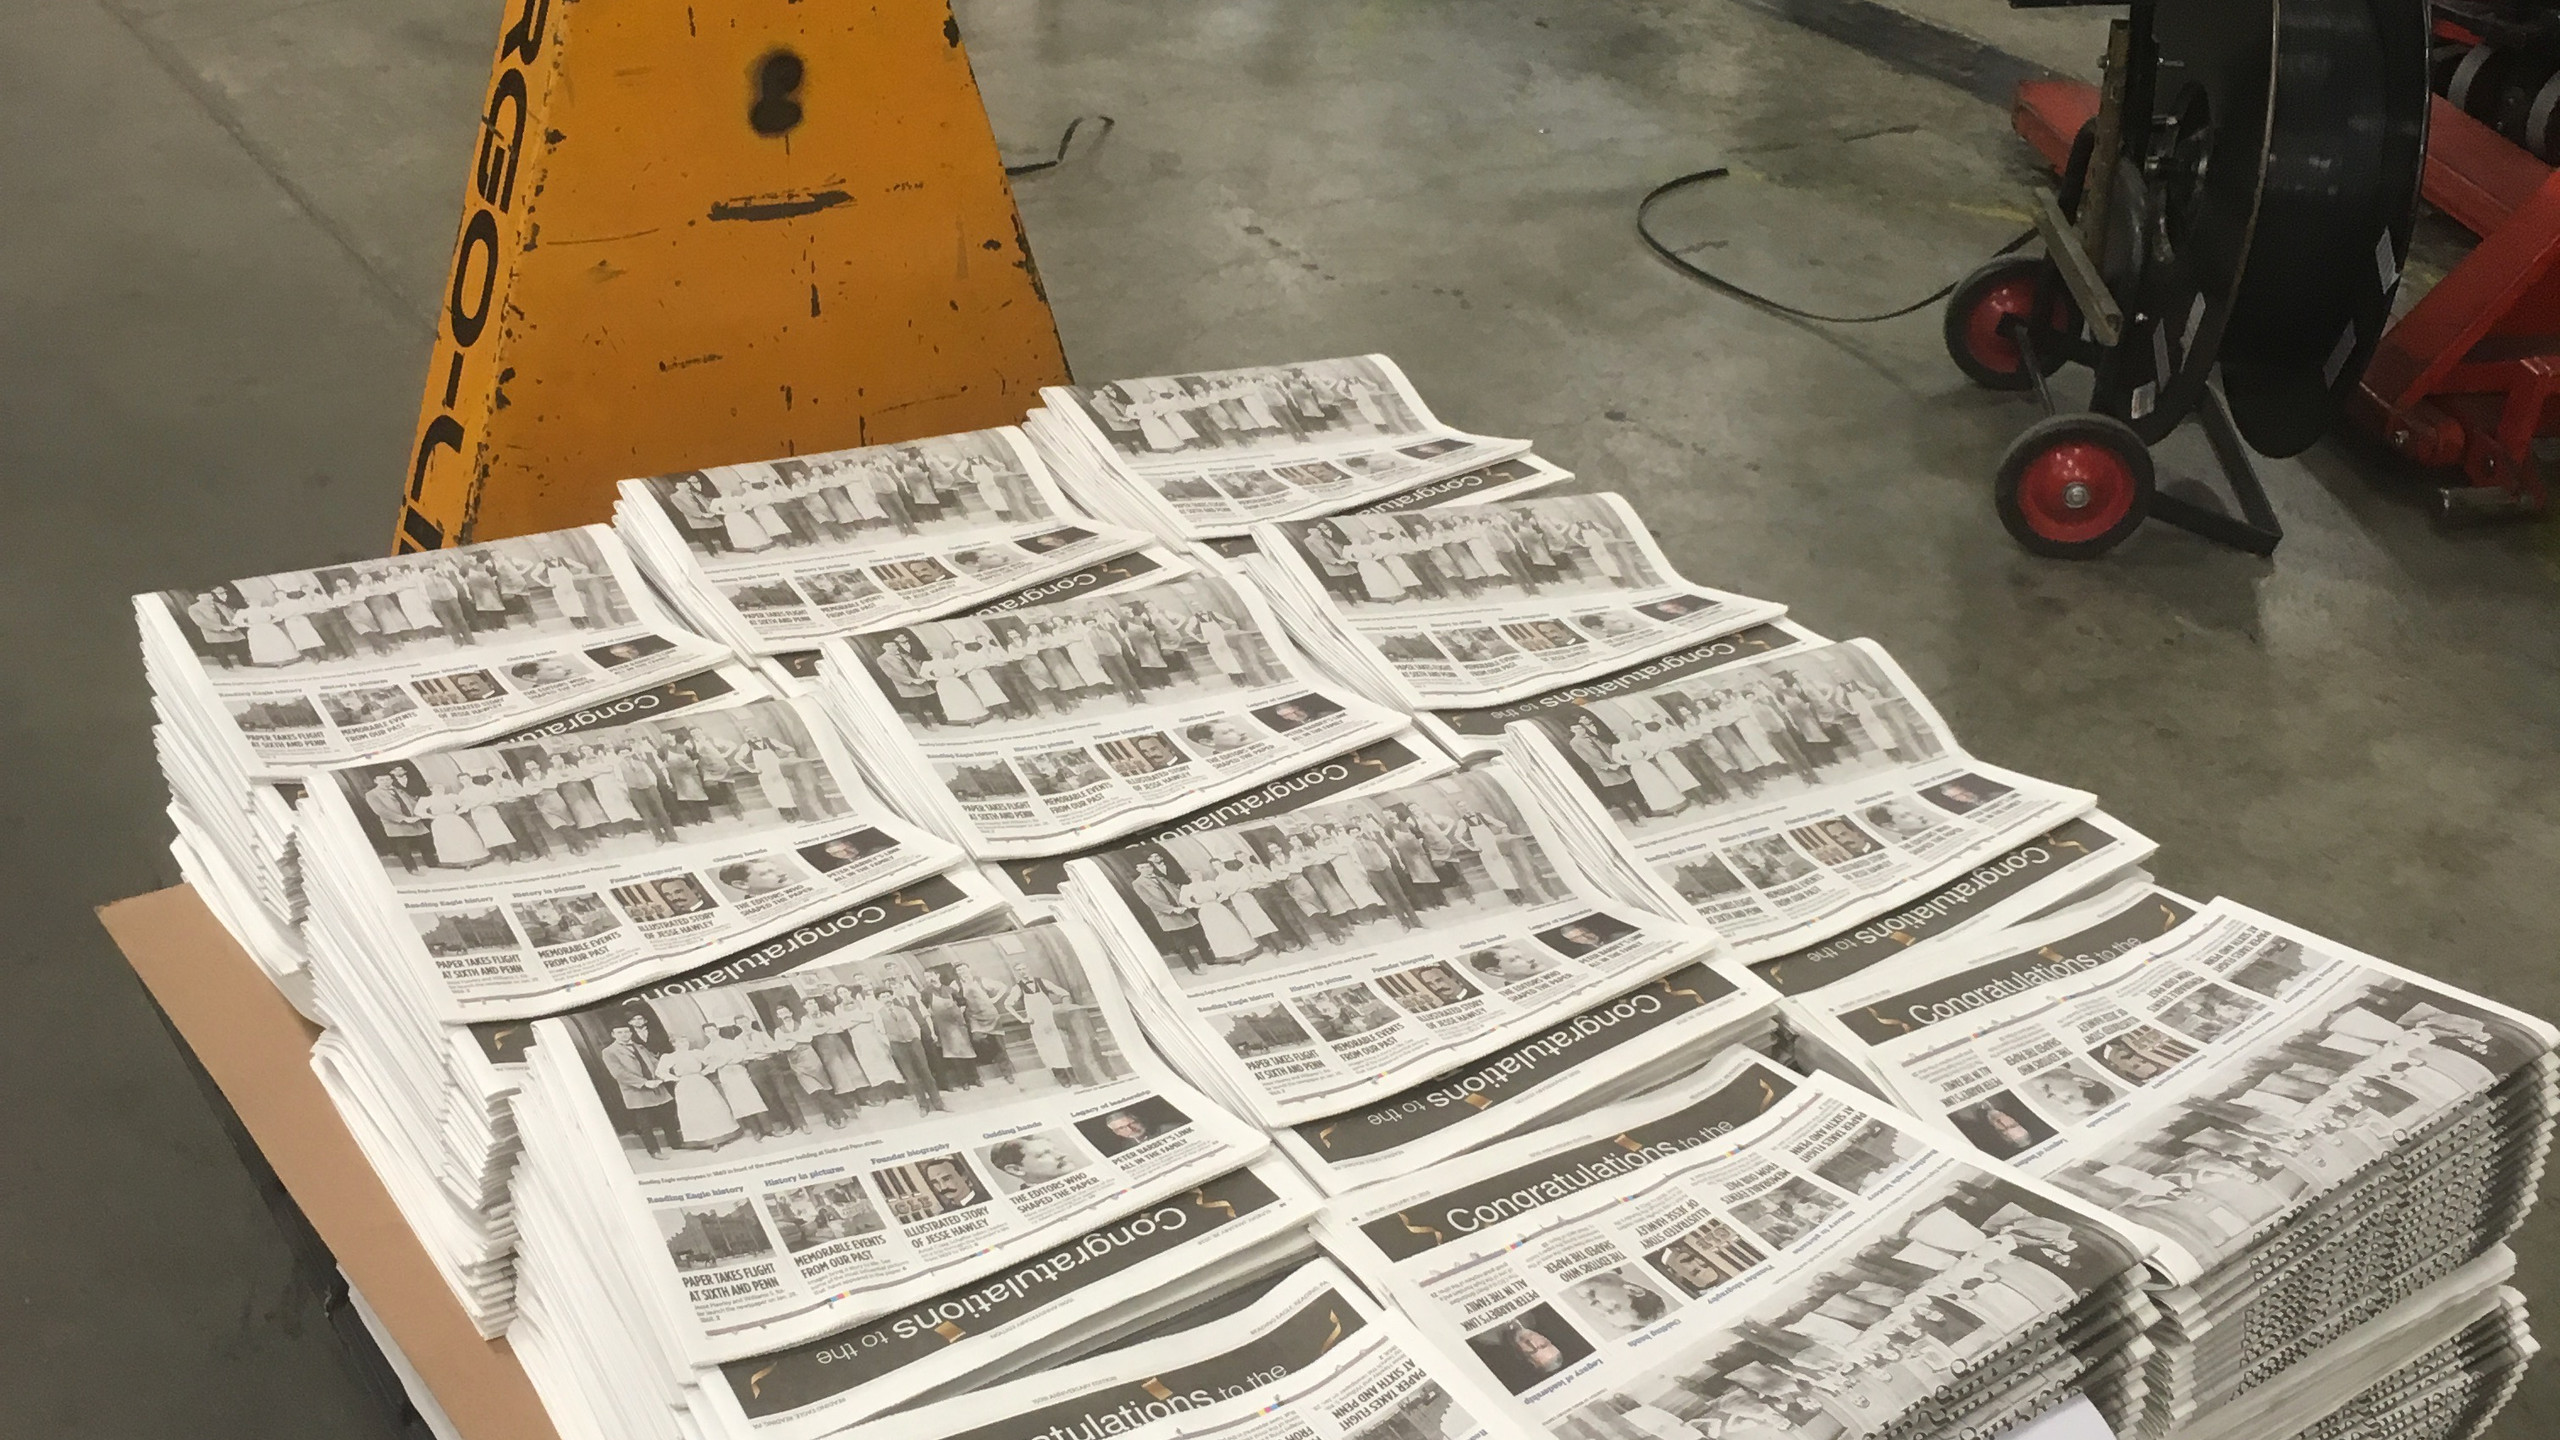 Preprinting the section